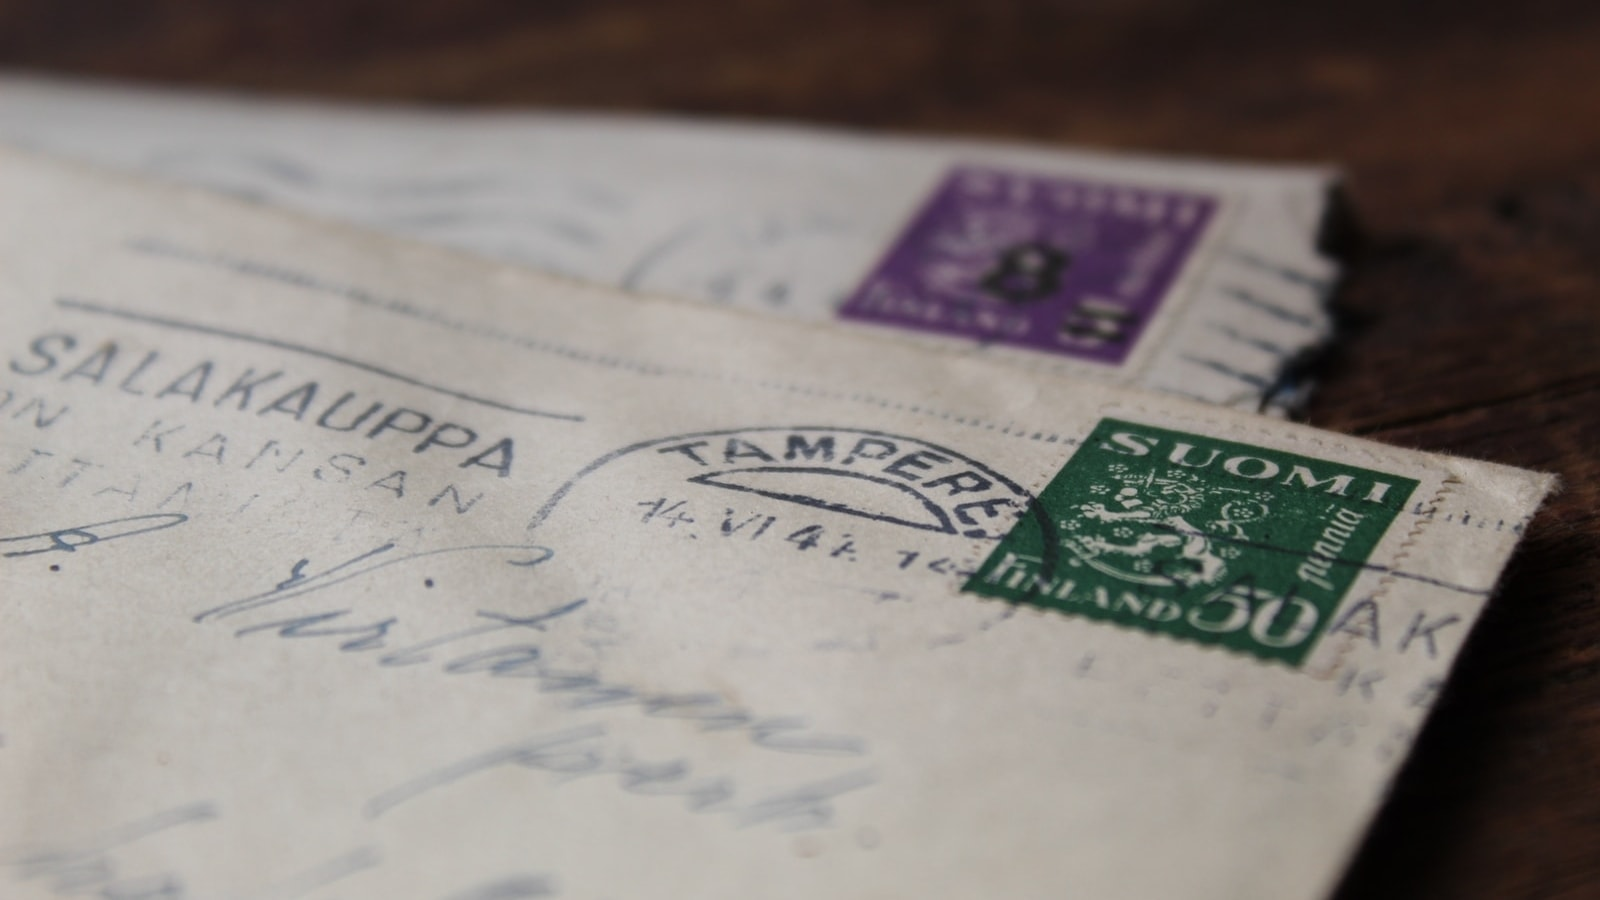 envelopes with postage stamps on a desk